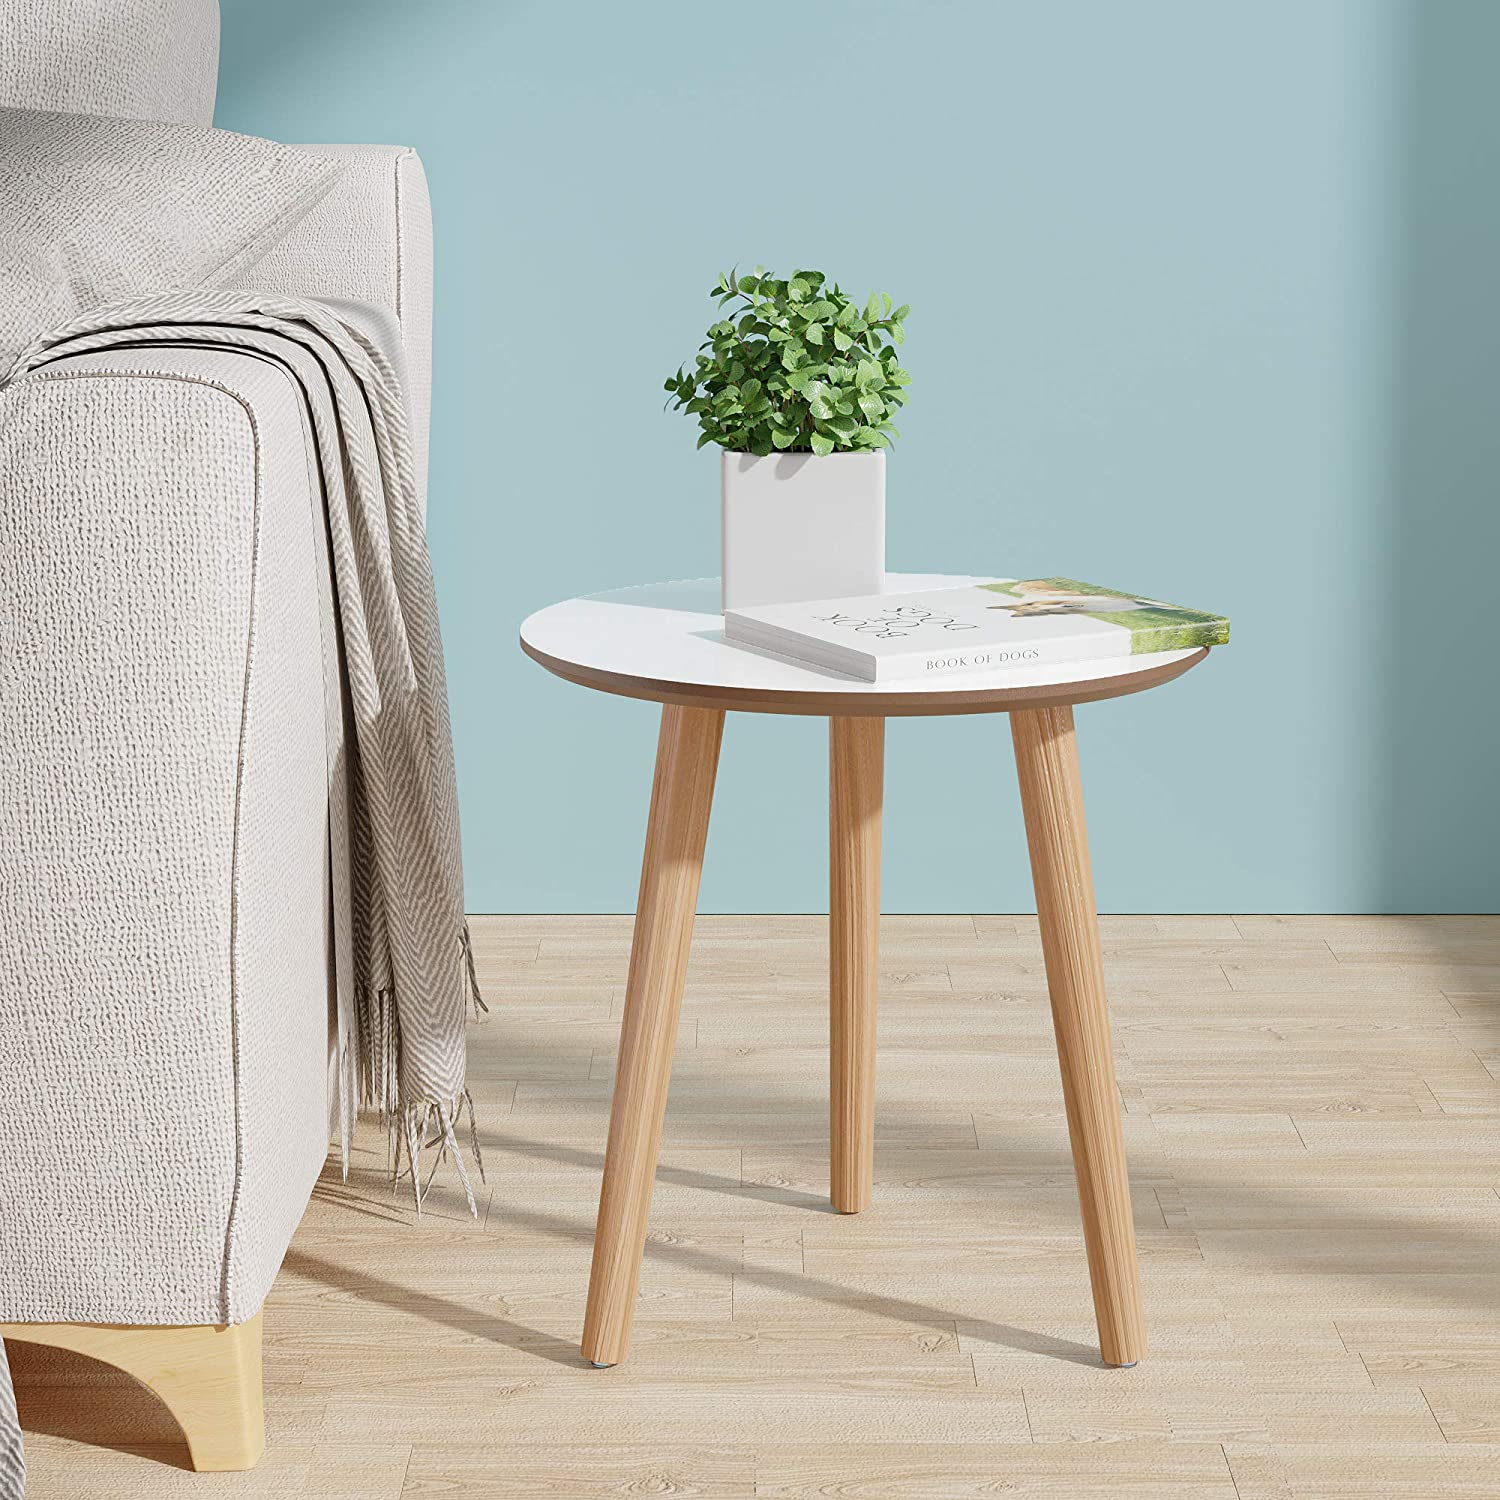 Jaxpety Round Side End Table Modern Small Coffee Table Log Desktop Nightstand For Living Room Bedroom Office Patio White Kitchen Dining